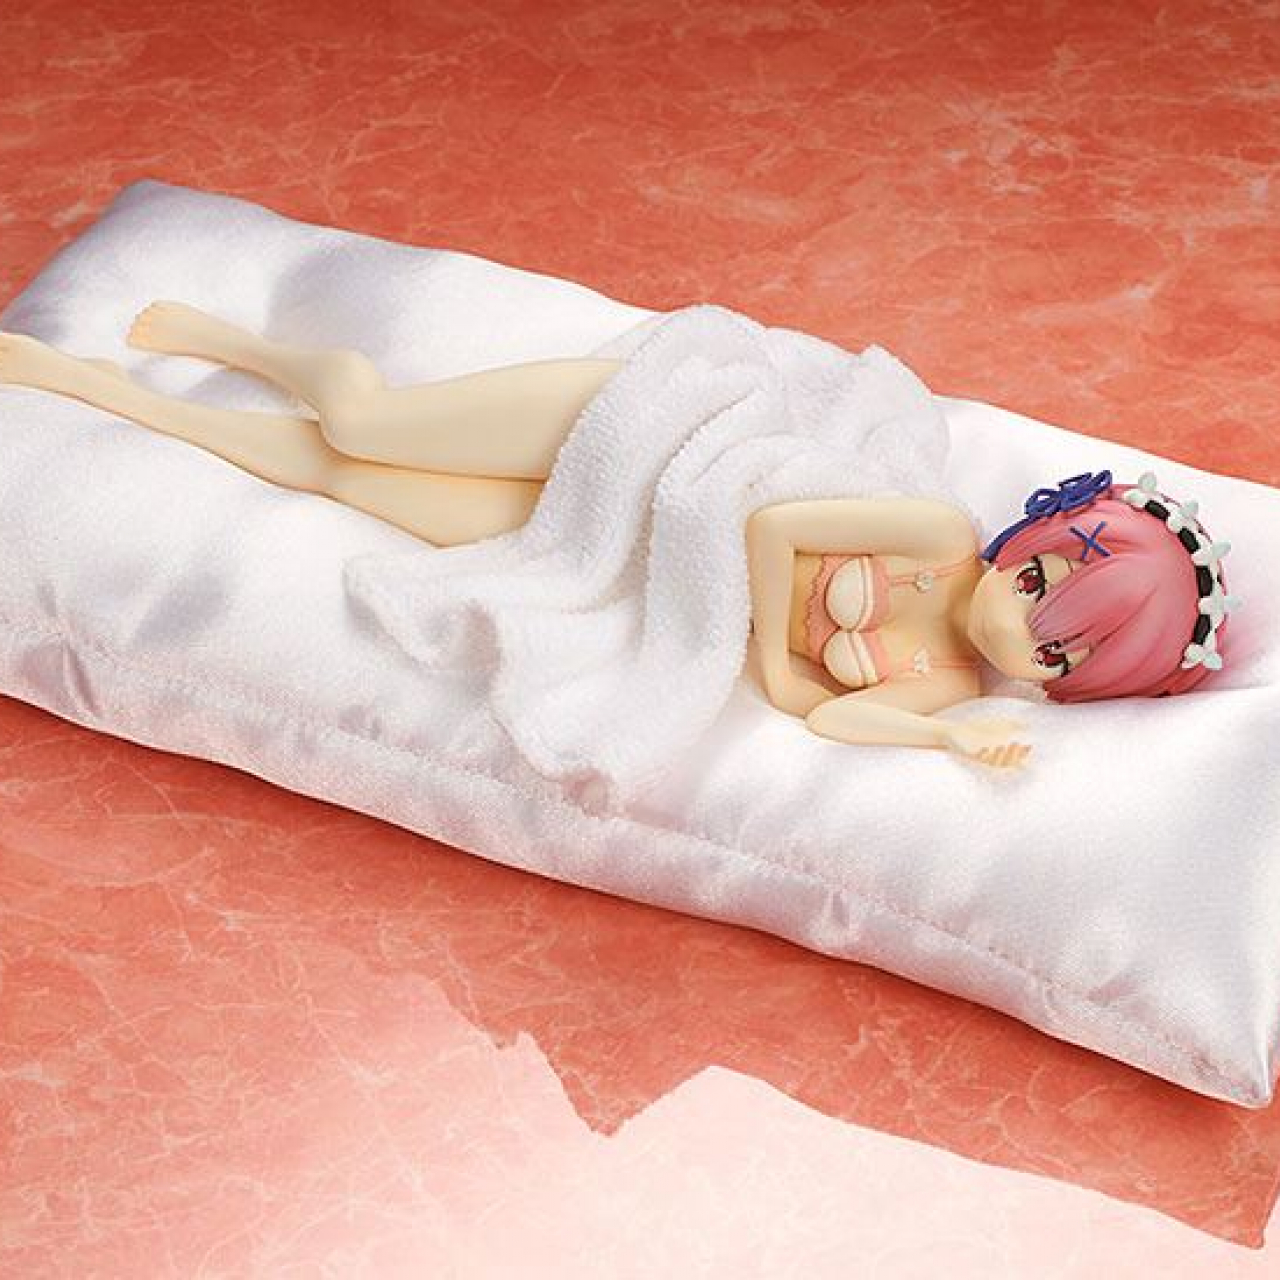 Re:ZERO -Starting Life in Another World- PVC Statue 1/7 Ram Sleep Sharing Pink Lingerie Ver. 23 cm